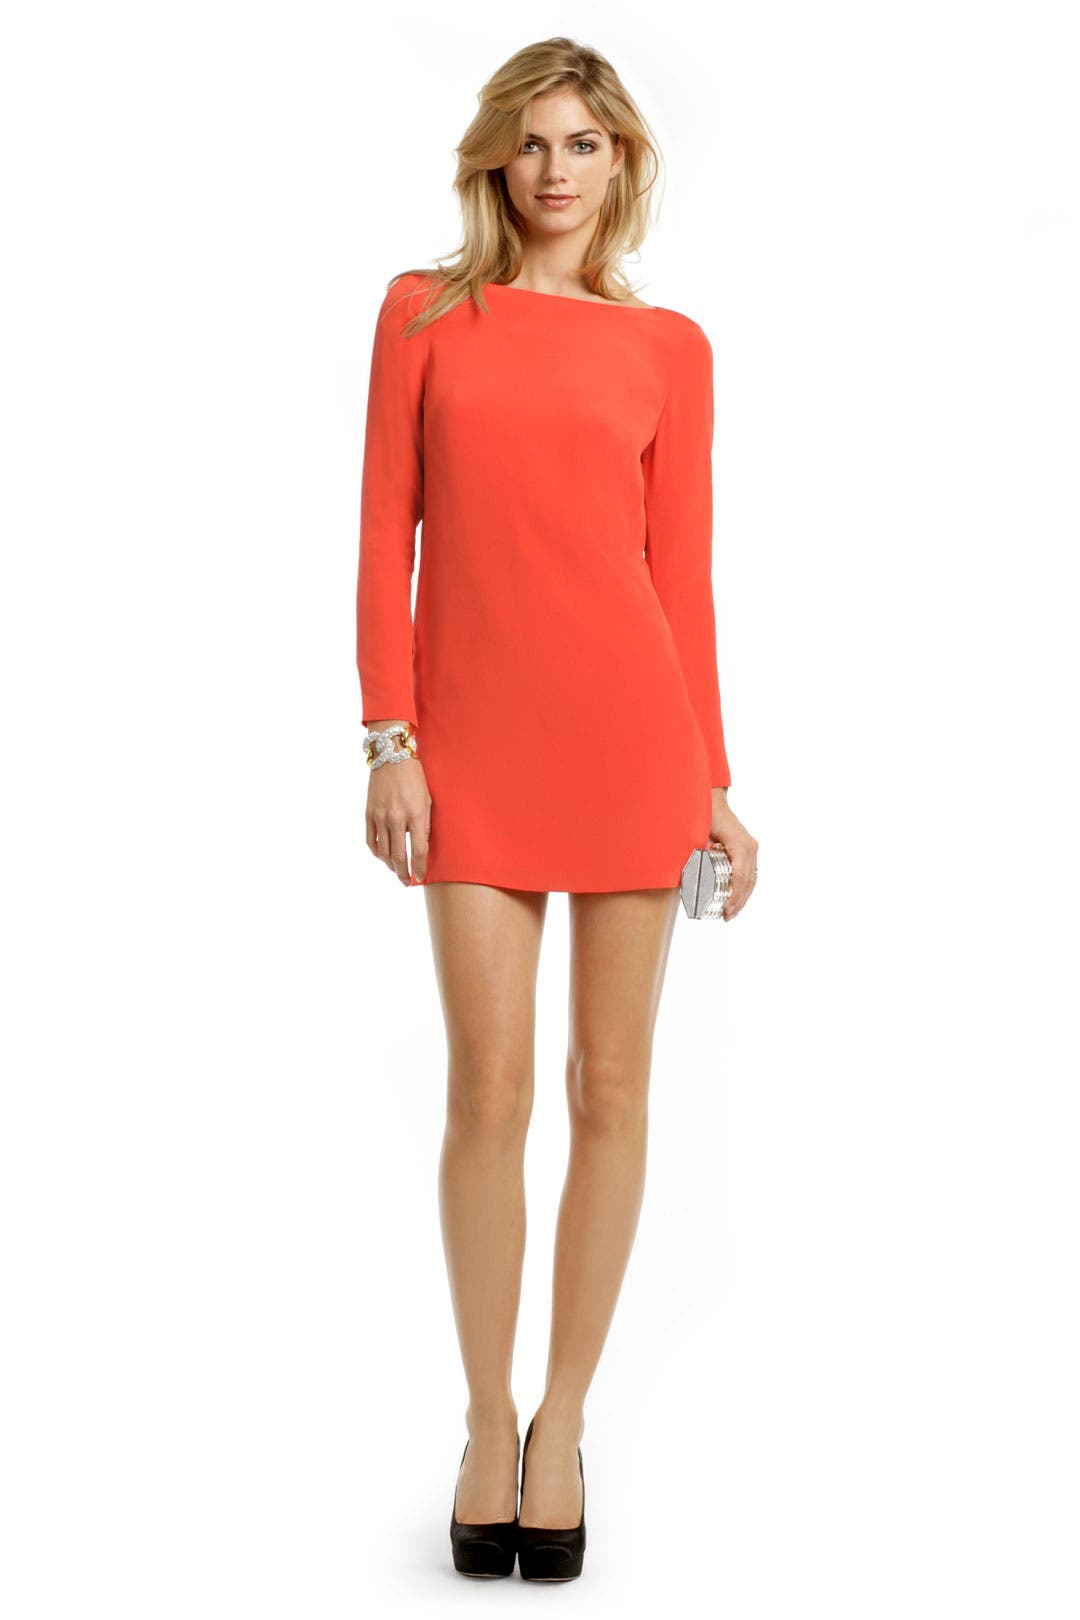 Orange Crush Sheath Dress by Tibi